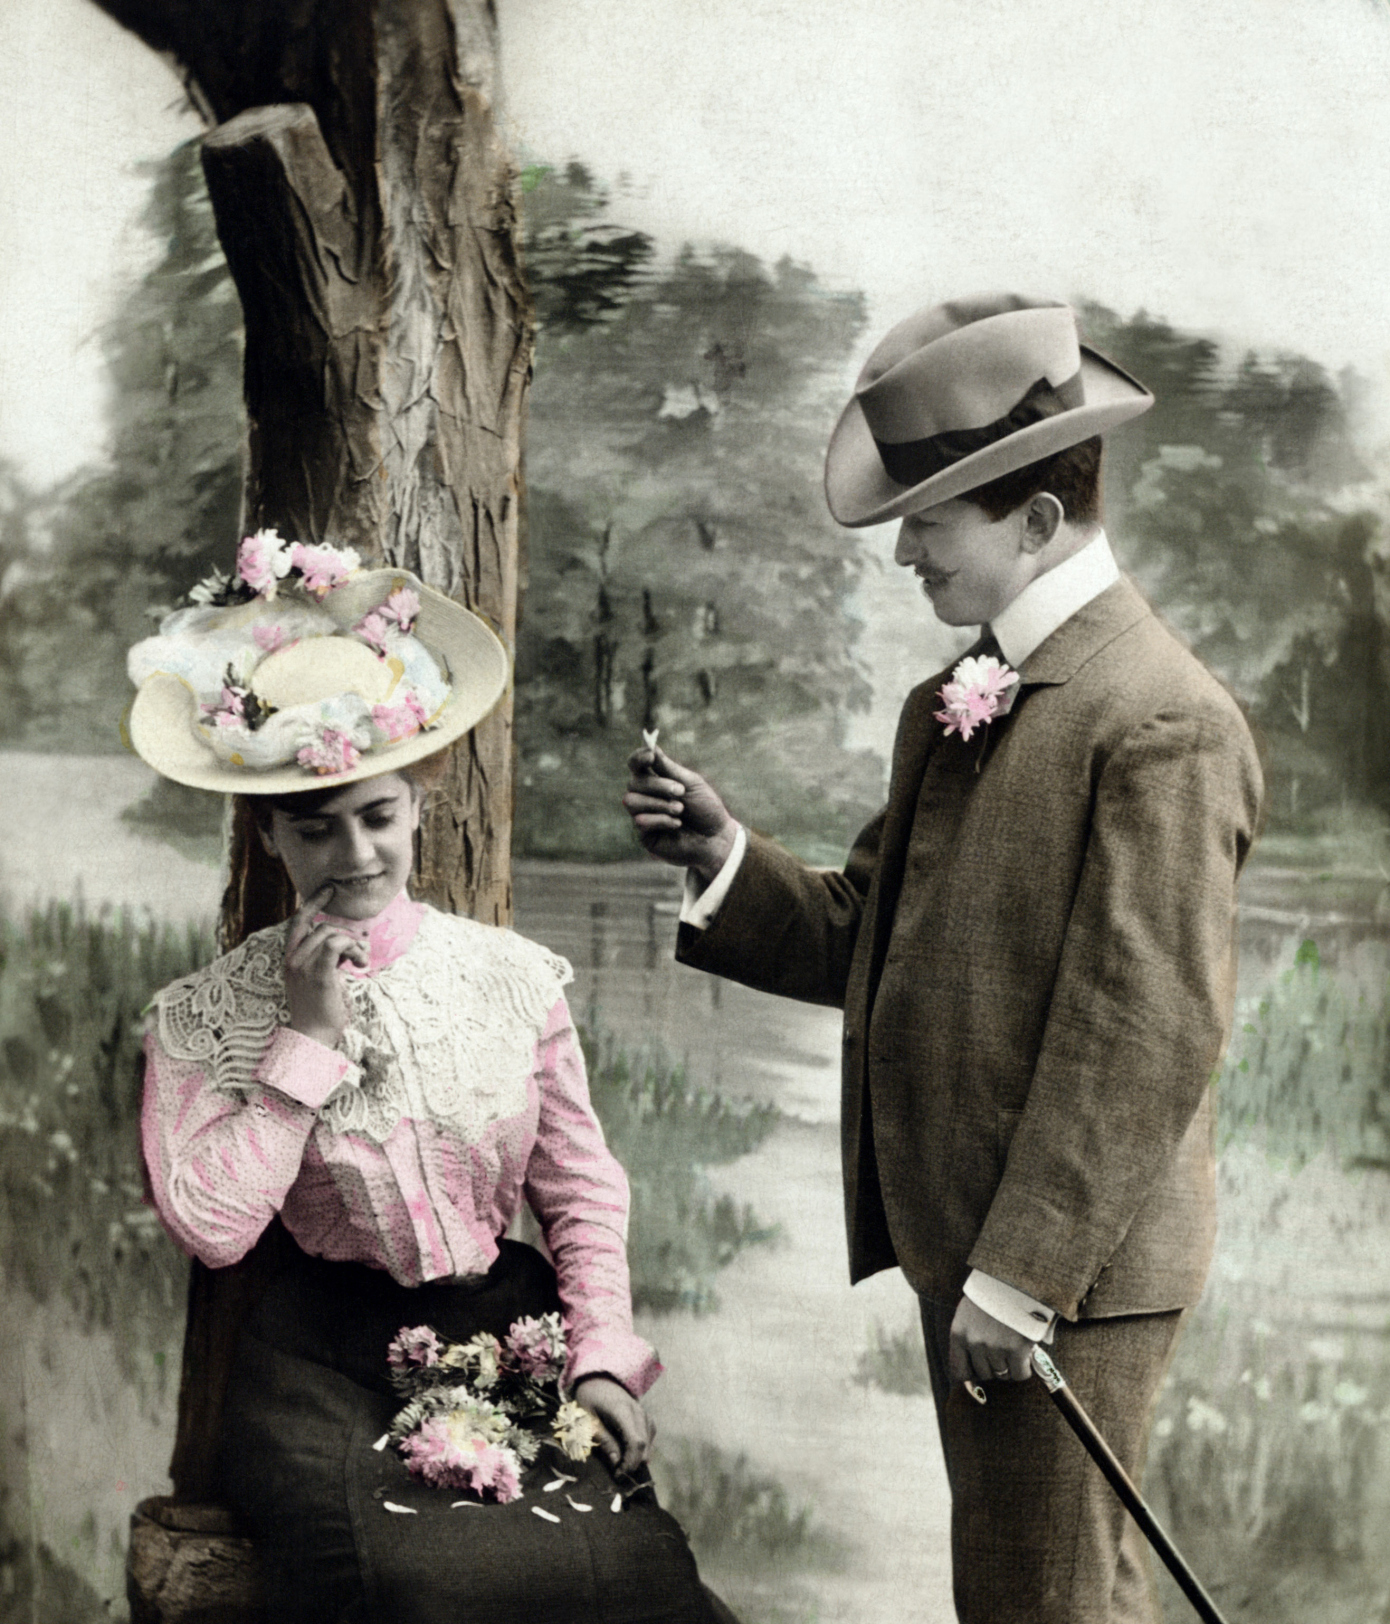 history of romance: Traditional wedding anniversary gifts per year